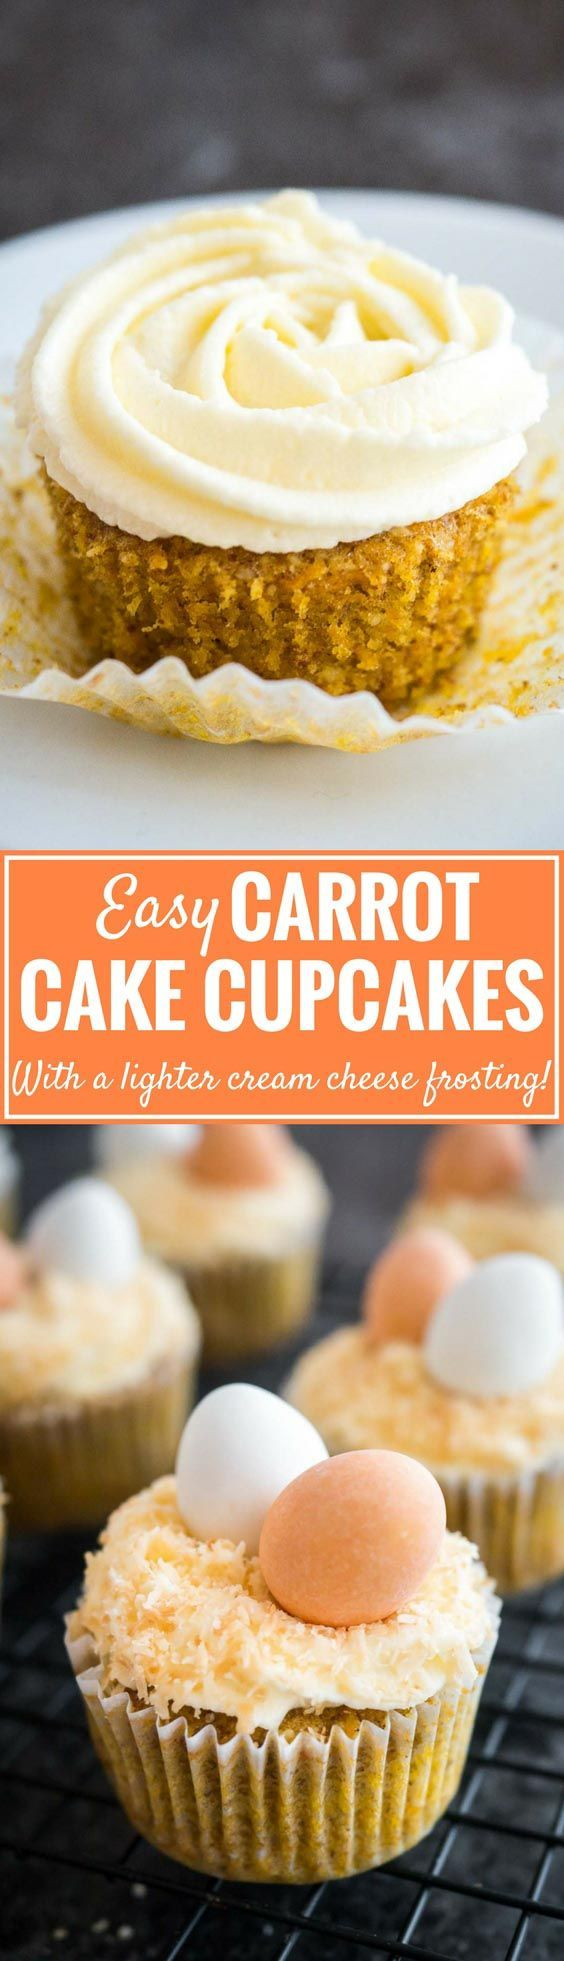 These Carrot Cake Cupcakes with cream cheese frosting are perfect for Easter! They're super moist, made with just the right amount of spice, and the not-too-sweet frosting is heavenly. An easy from scratch carrot cupcake recipe that can be made ahead and comes with a cute Easter decorating idea. Perfect for brunch or dessert! #carrotcupcakes #carrotcakecupcakes #cupcakes #Easter #CreamCheeseFrosting #baking #EasterRecipes